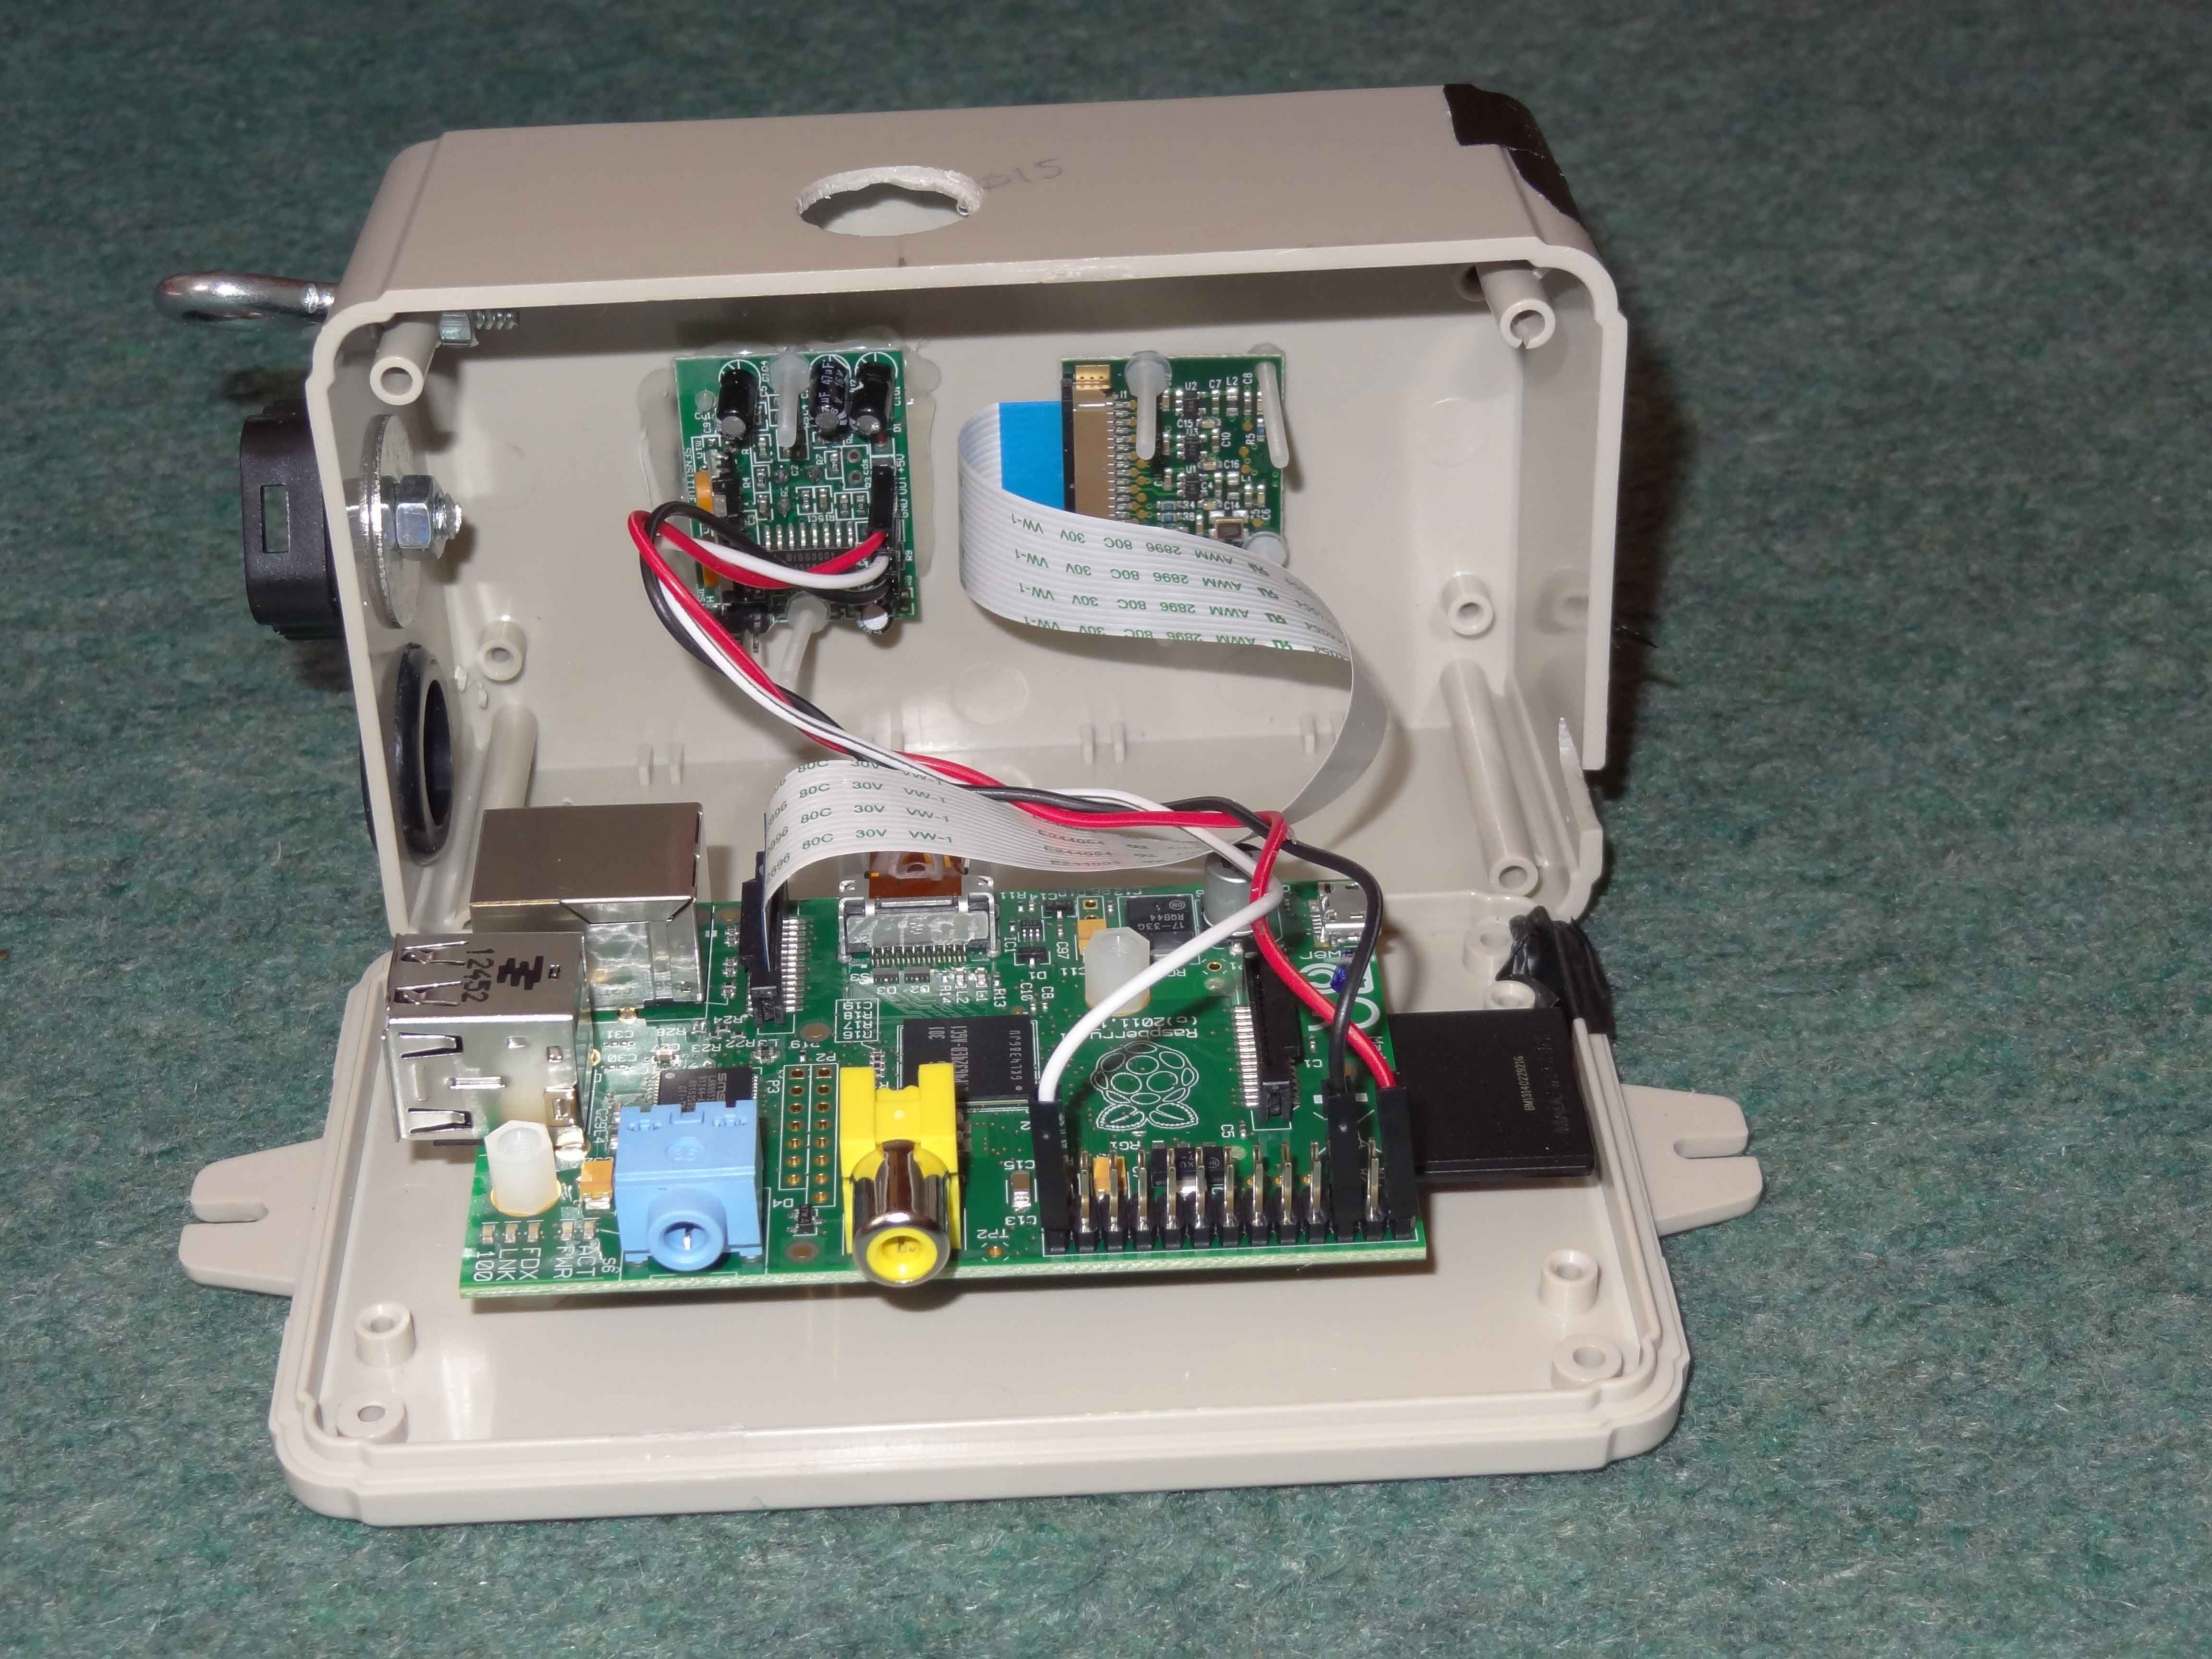 Raspberry pi trail cam projects to try pinterest raspberry pi trail cam rubansaba